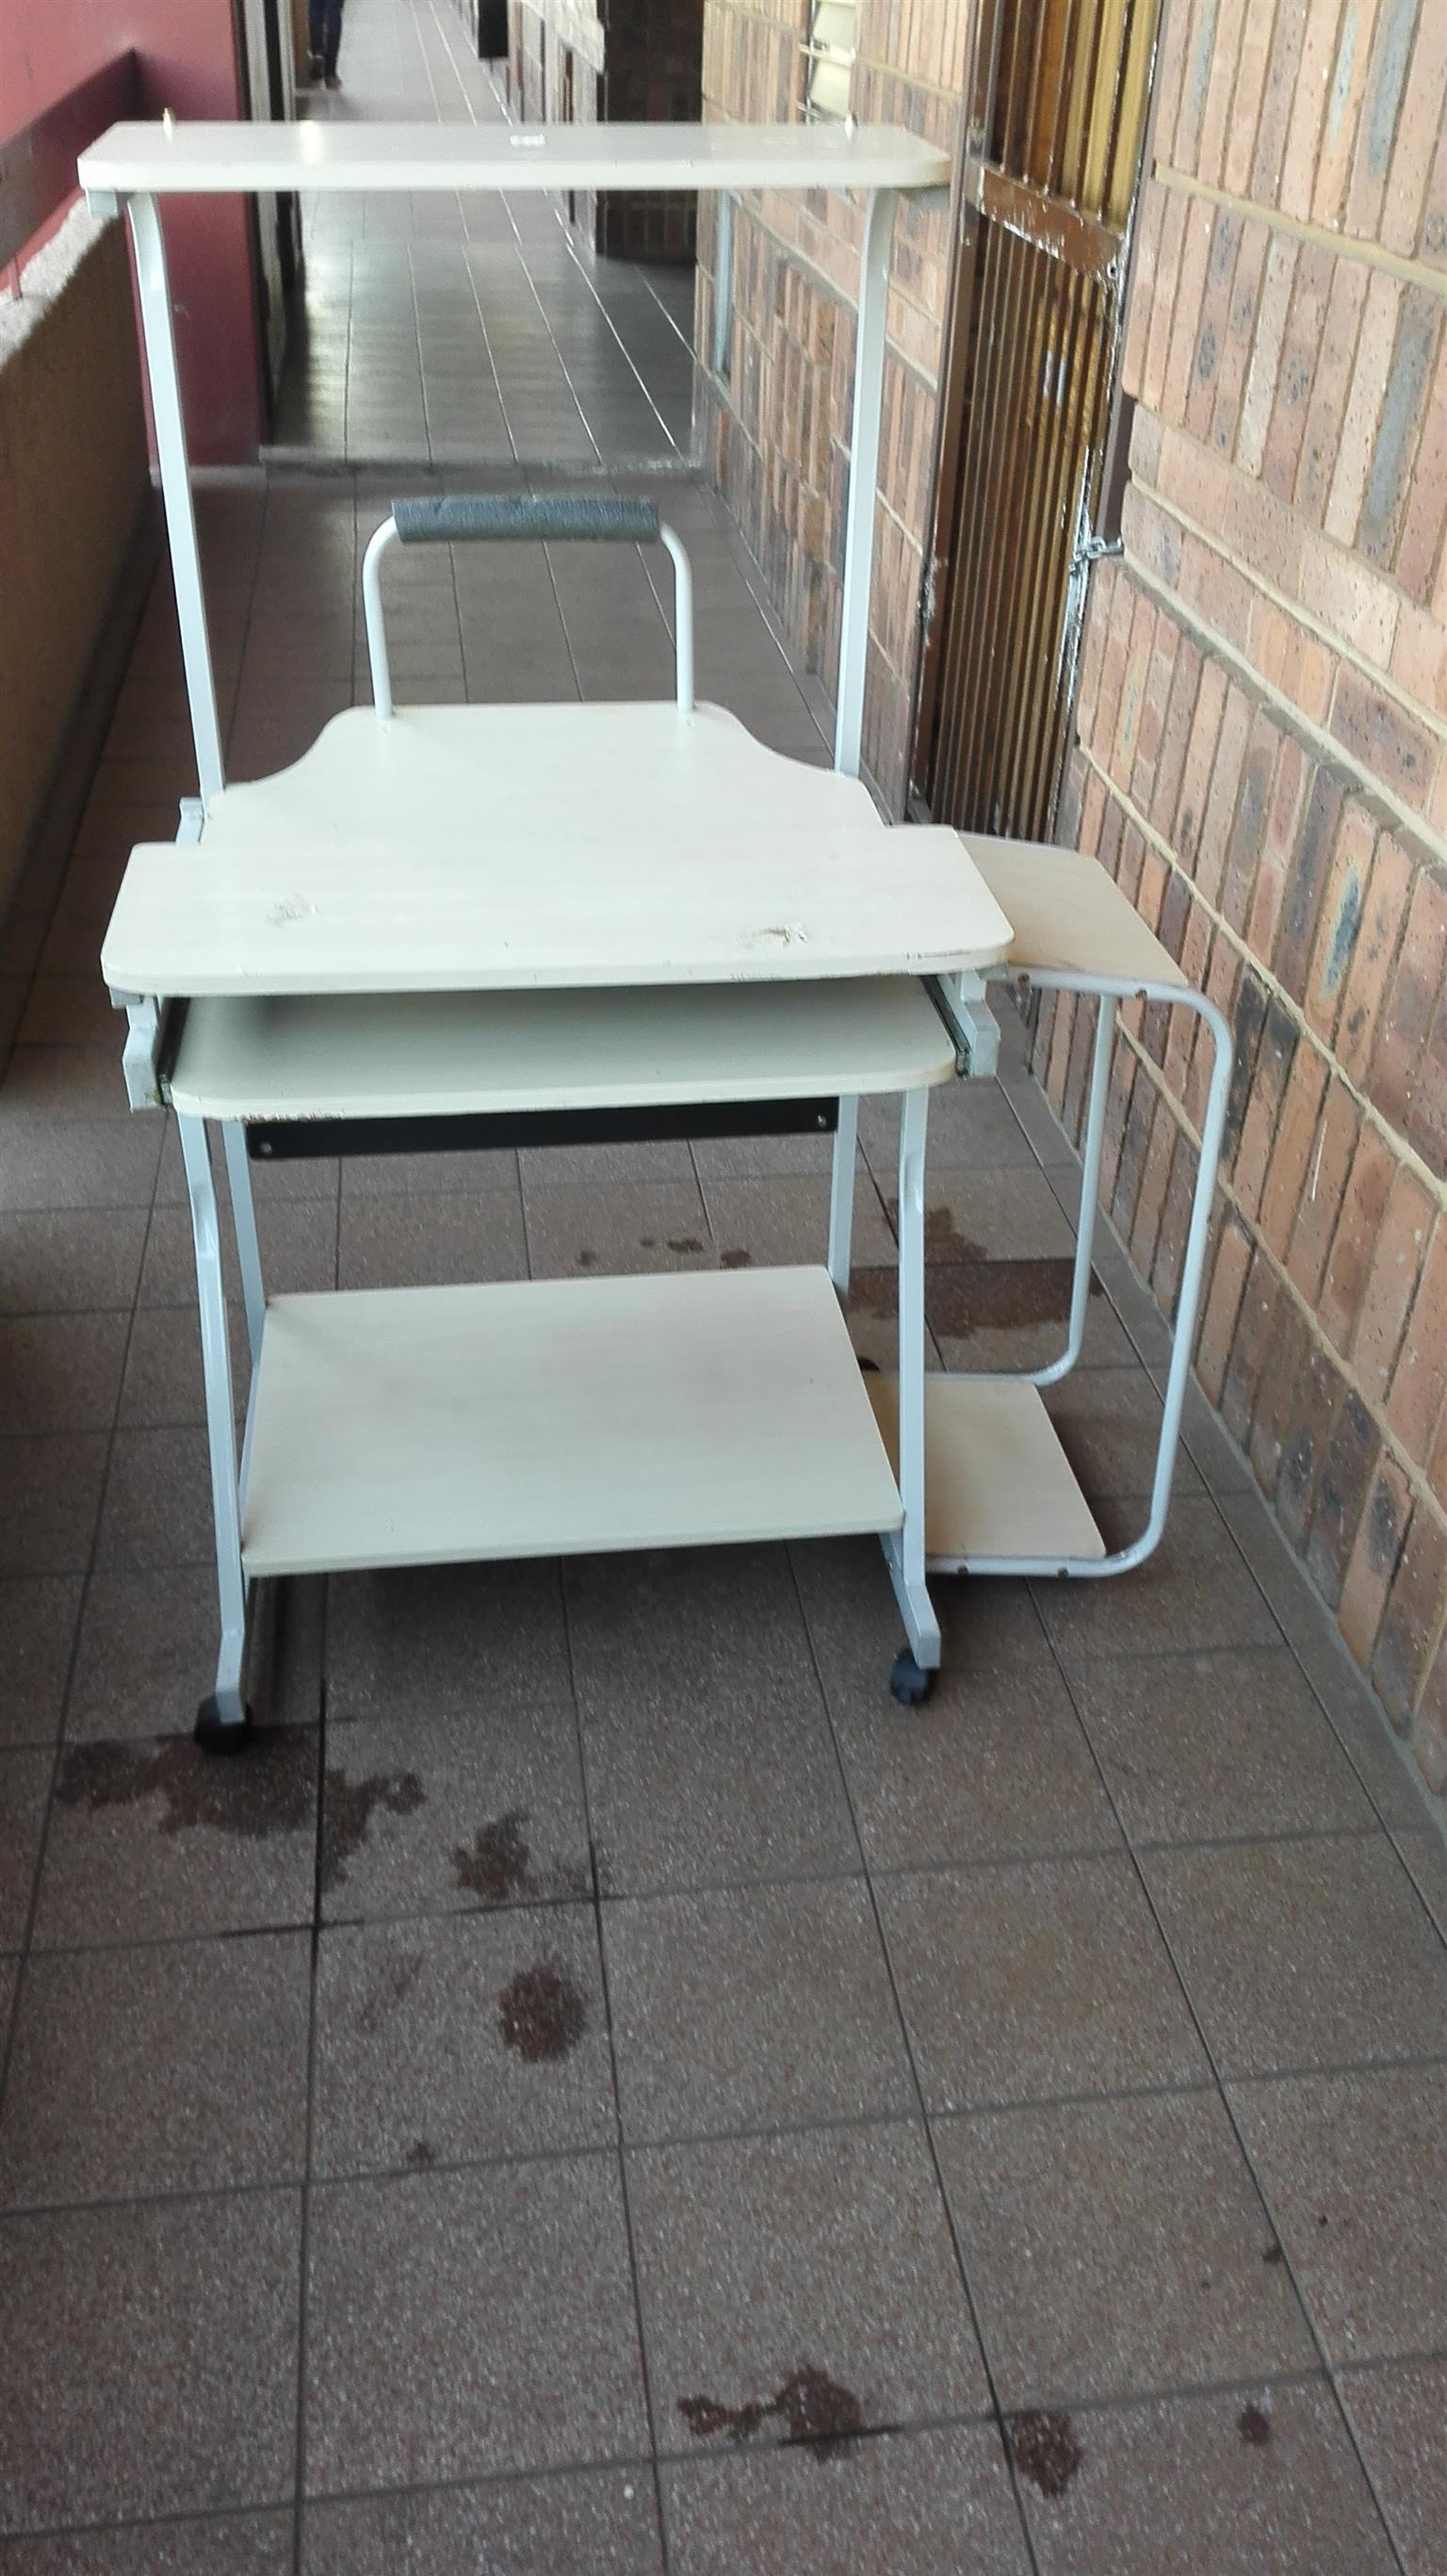 Computer Study Table For Sale